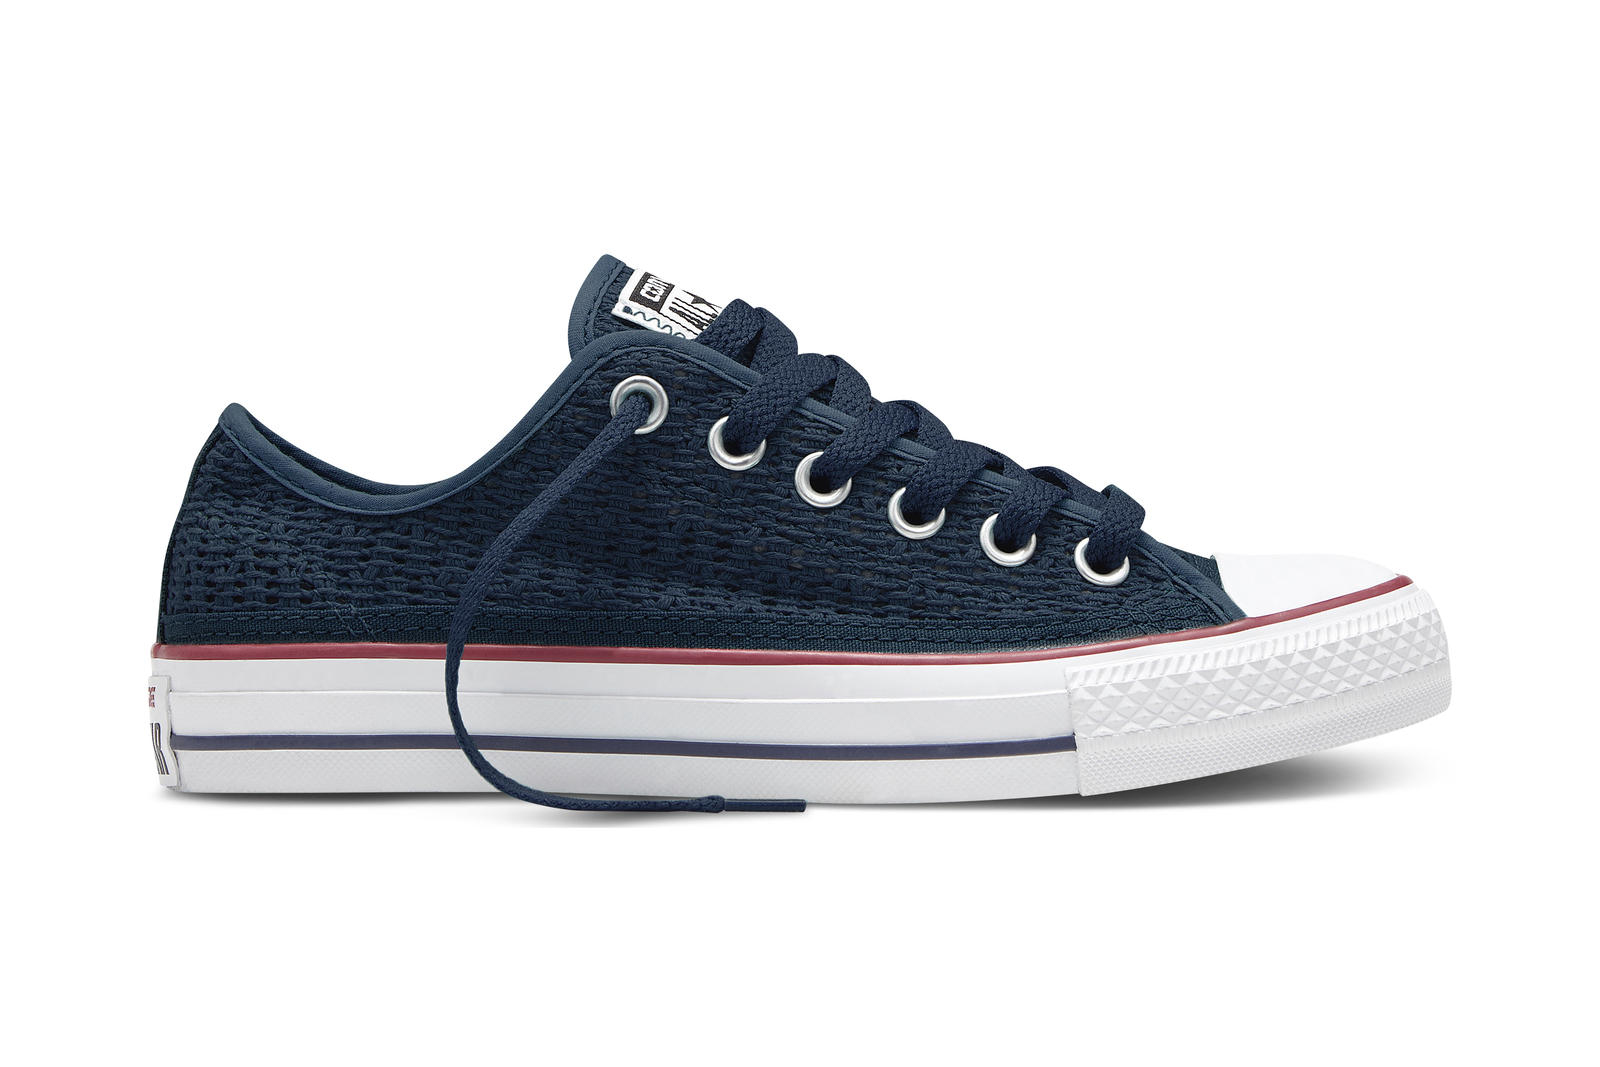 converse and nike Converse release dates and information at nicekickscom get the latest news and info about converse shoes.